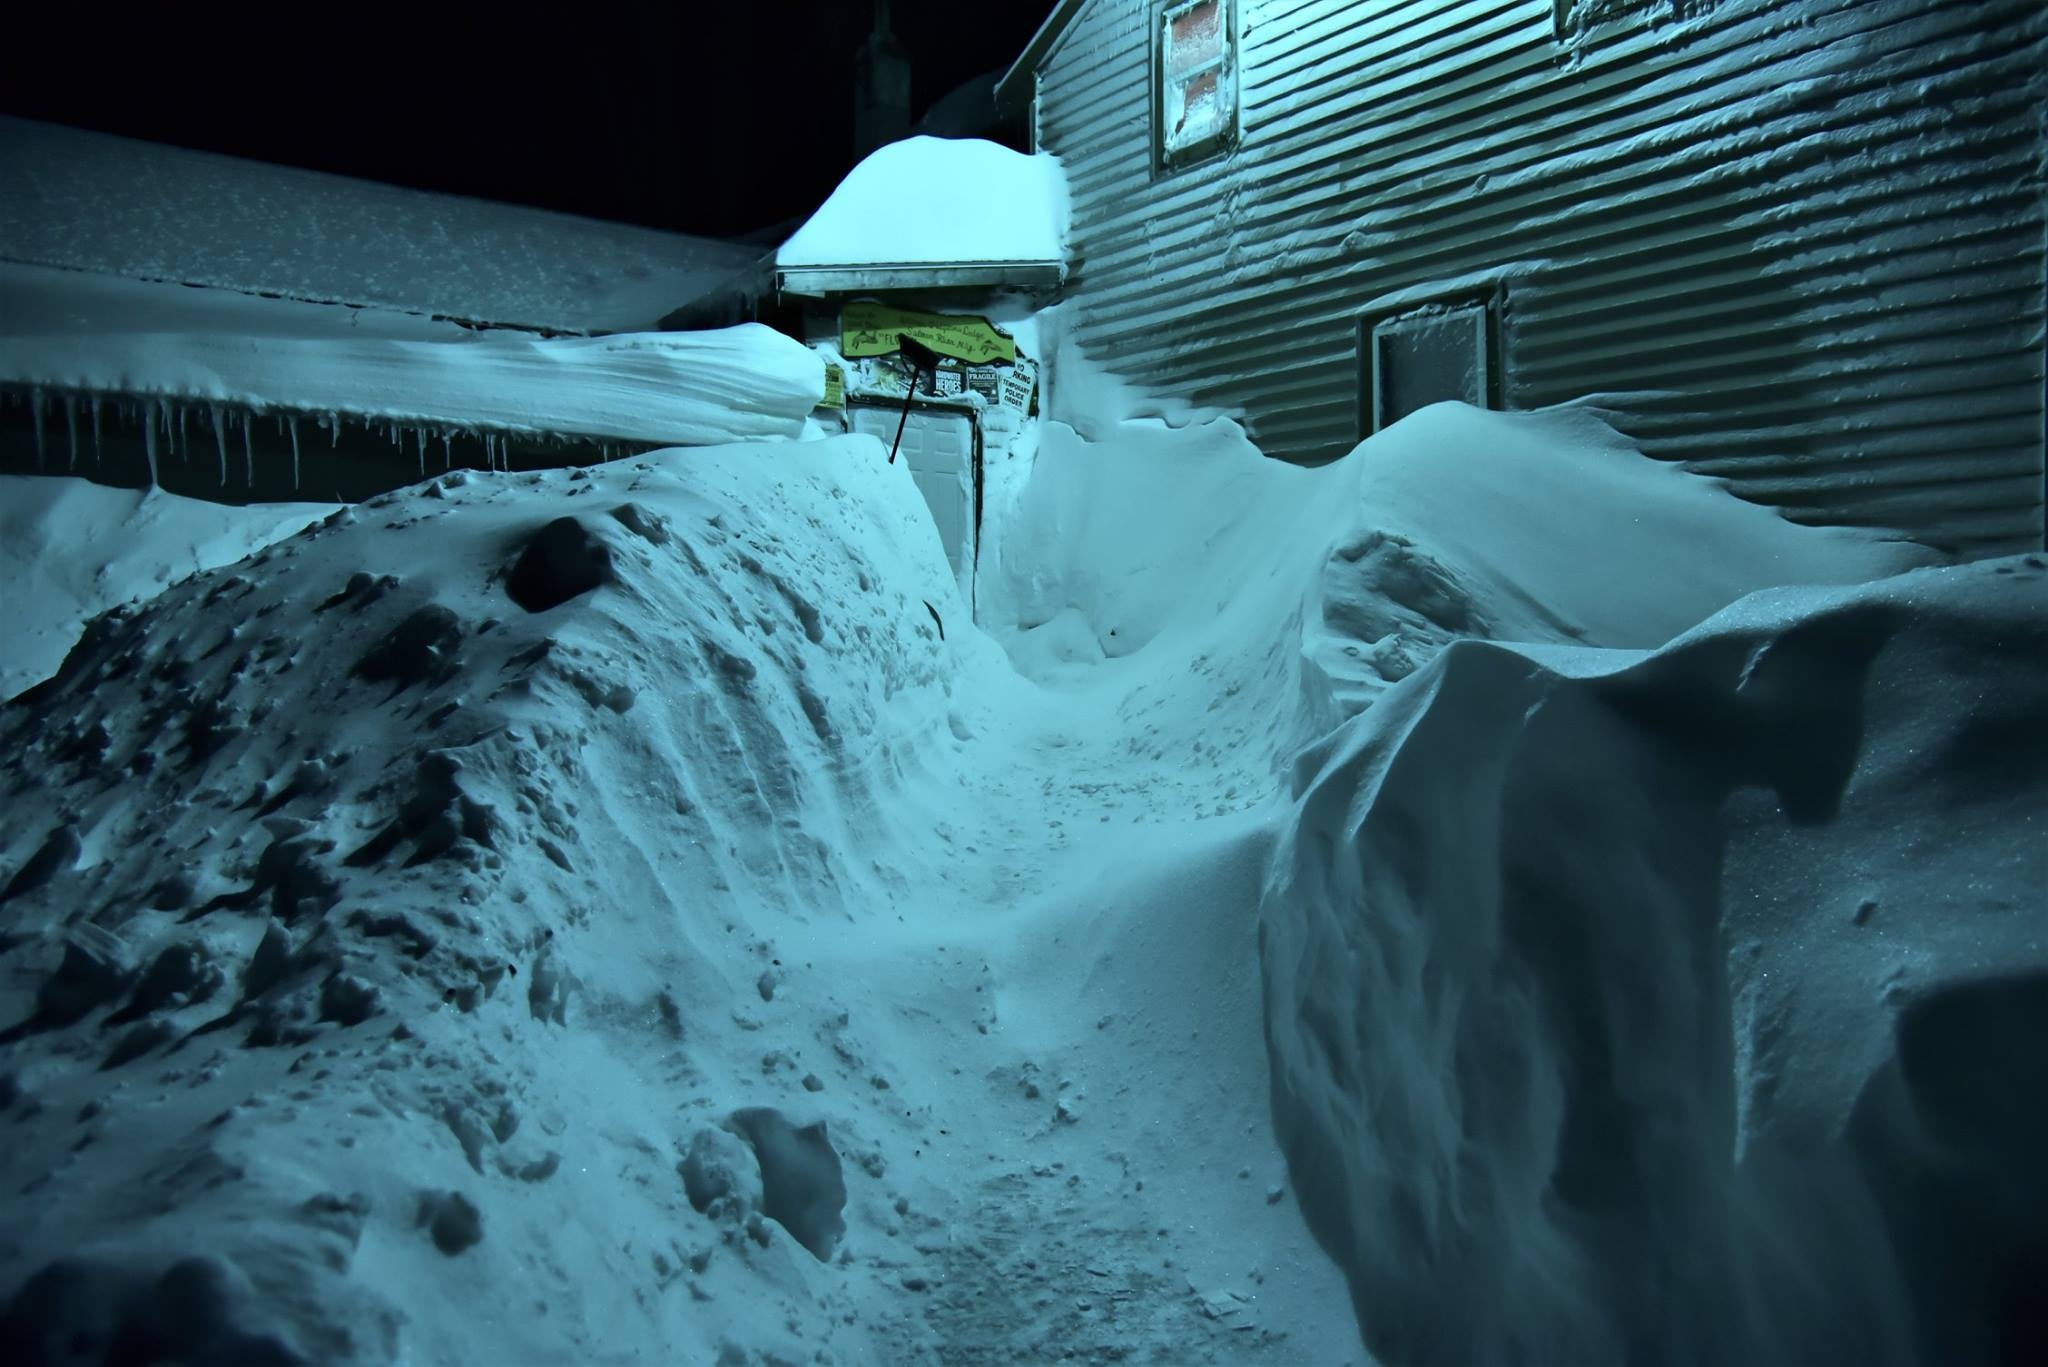 winter storm argos a record snowstorm for binghamton  new